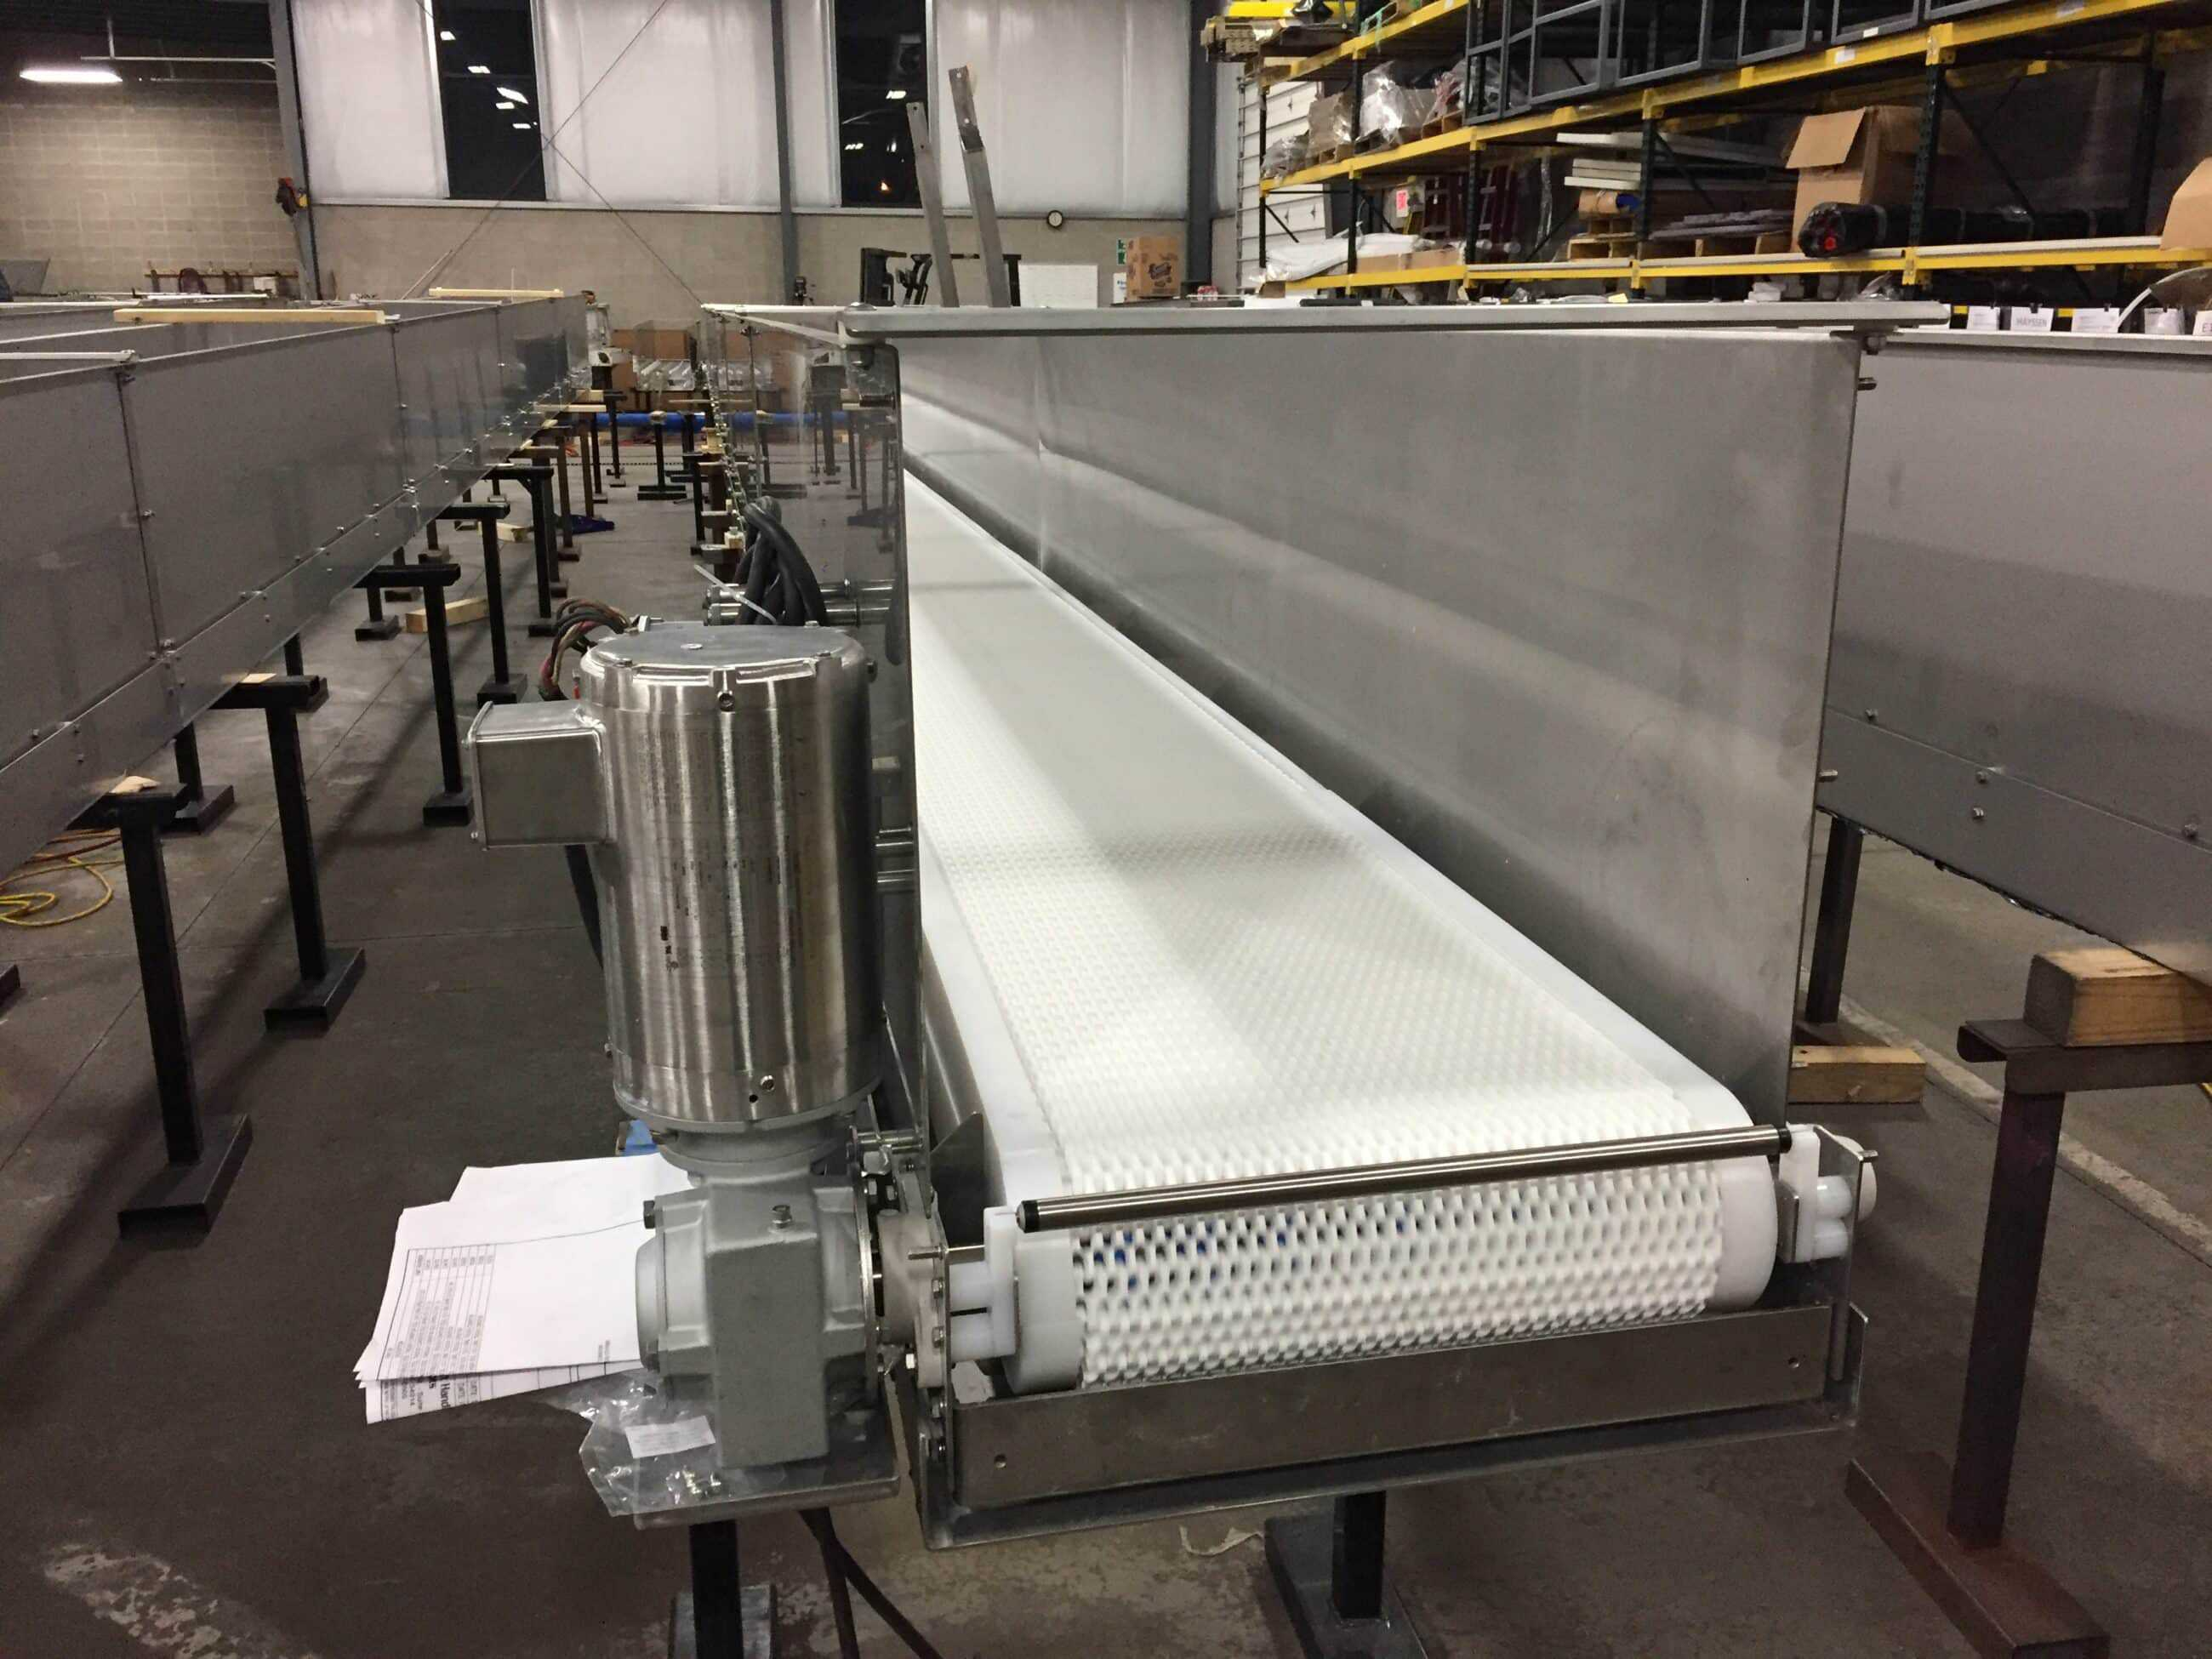 Robinson's packaging conveyor expertise fits food grade needs